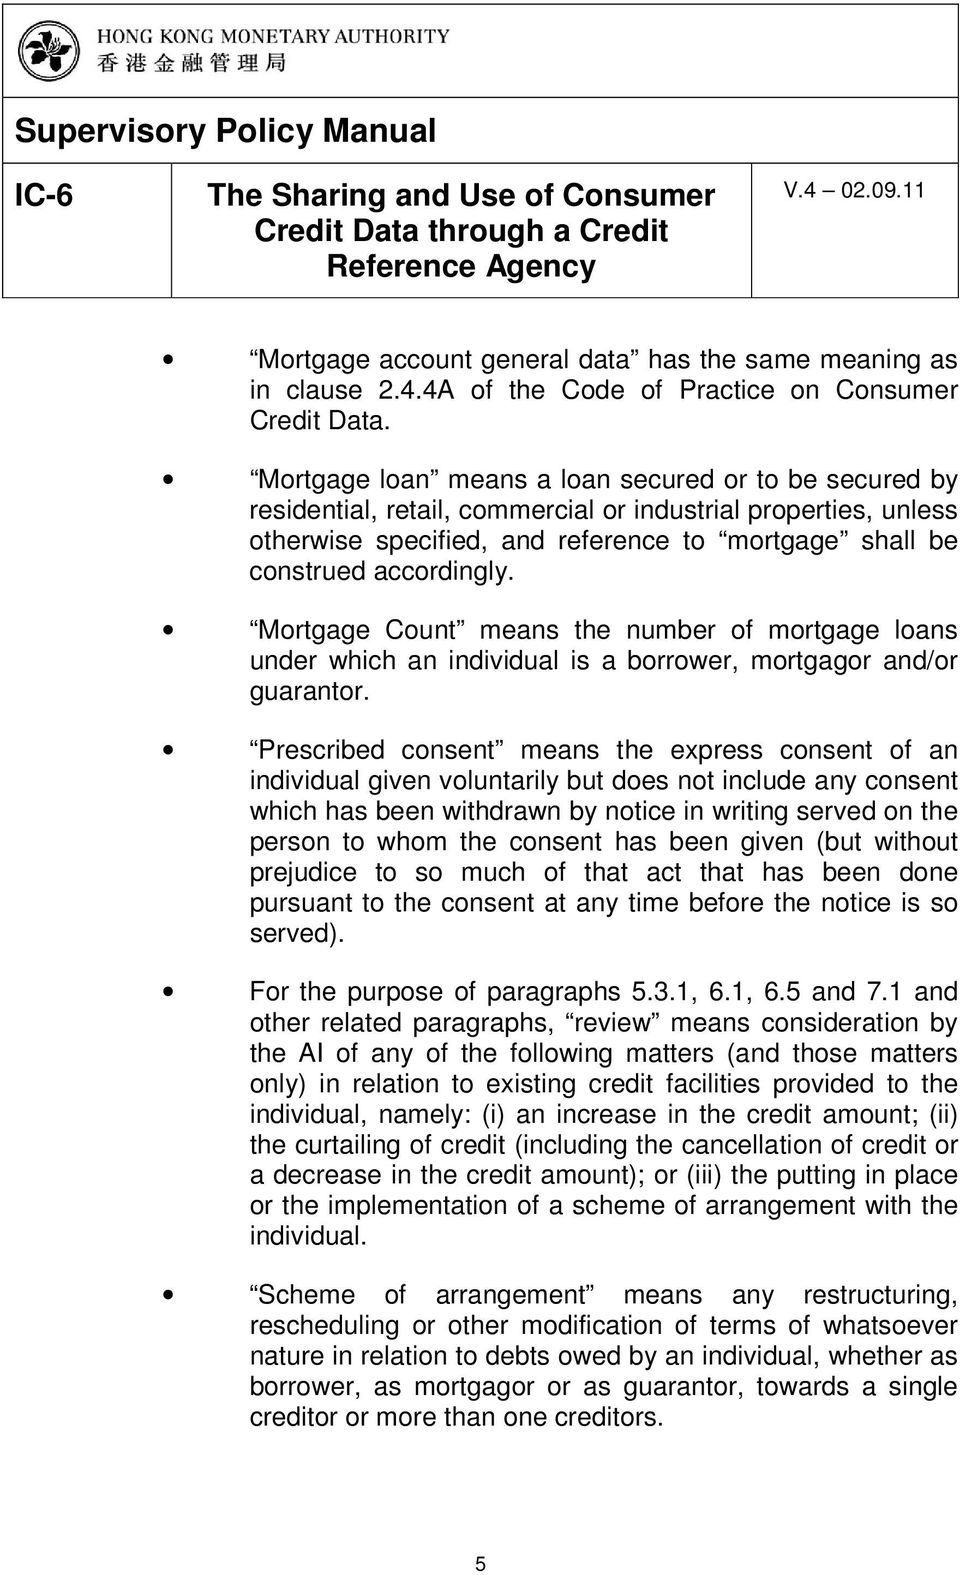 Mortgage Count means the number of mortgage loans under which an individual is a borrower, mortgagor and/or guarantor.